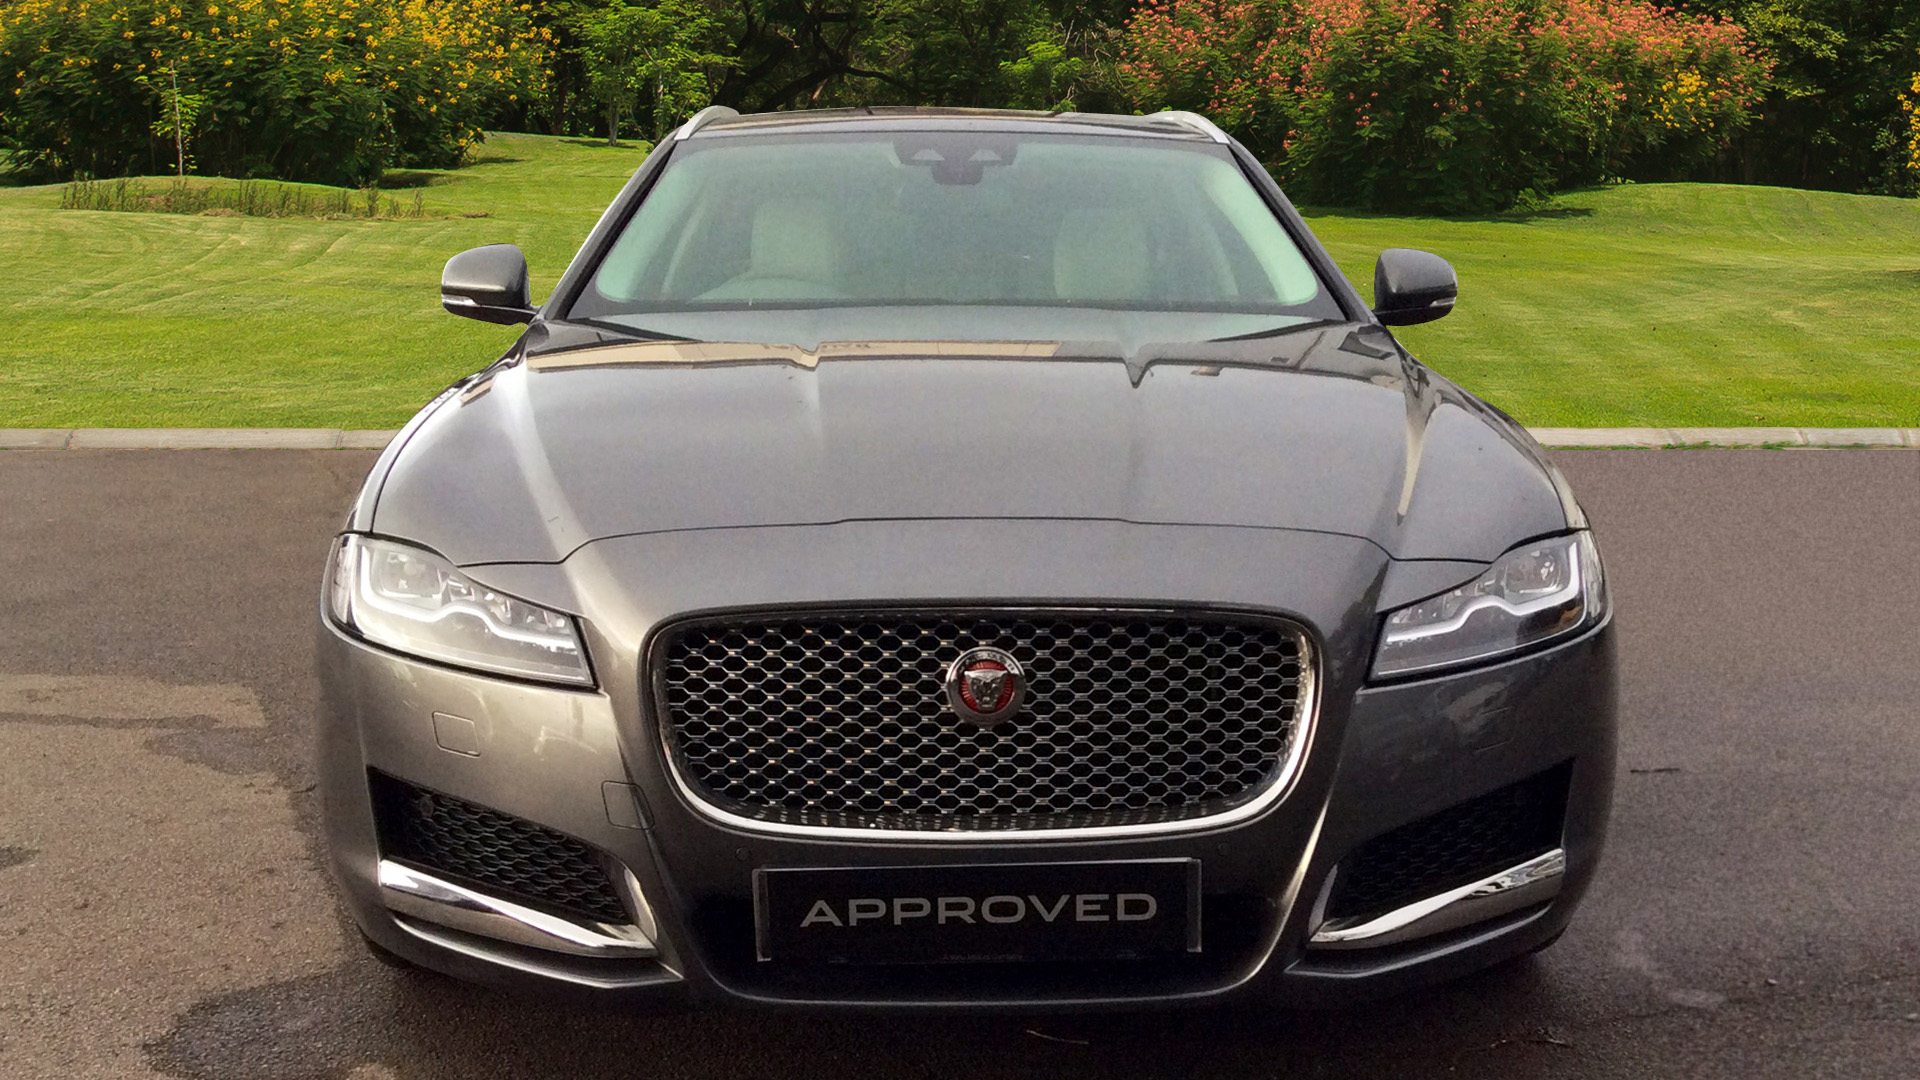 Used Jaguar XF 2 0D [240] Portfolio 5Dr Auto Awd Diesel Estate for